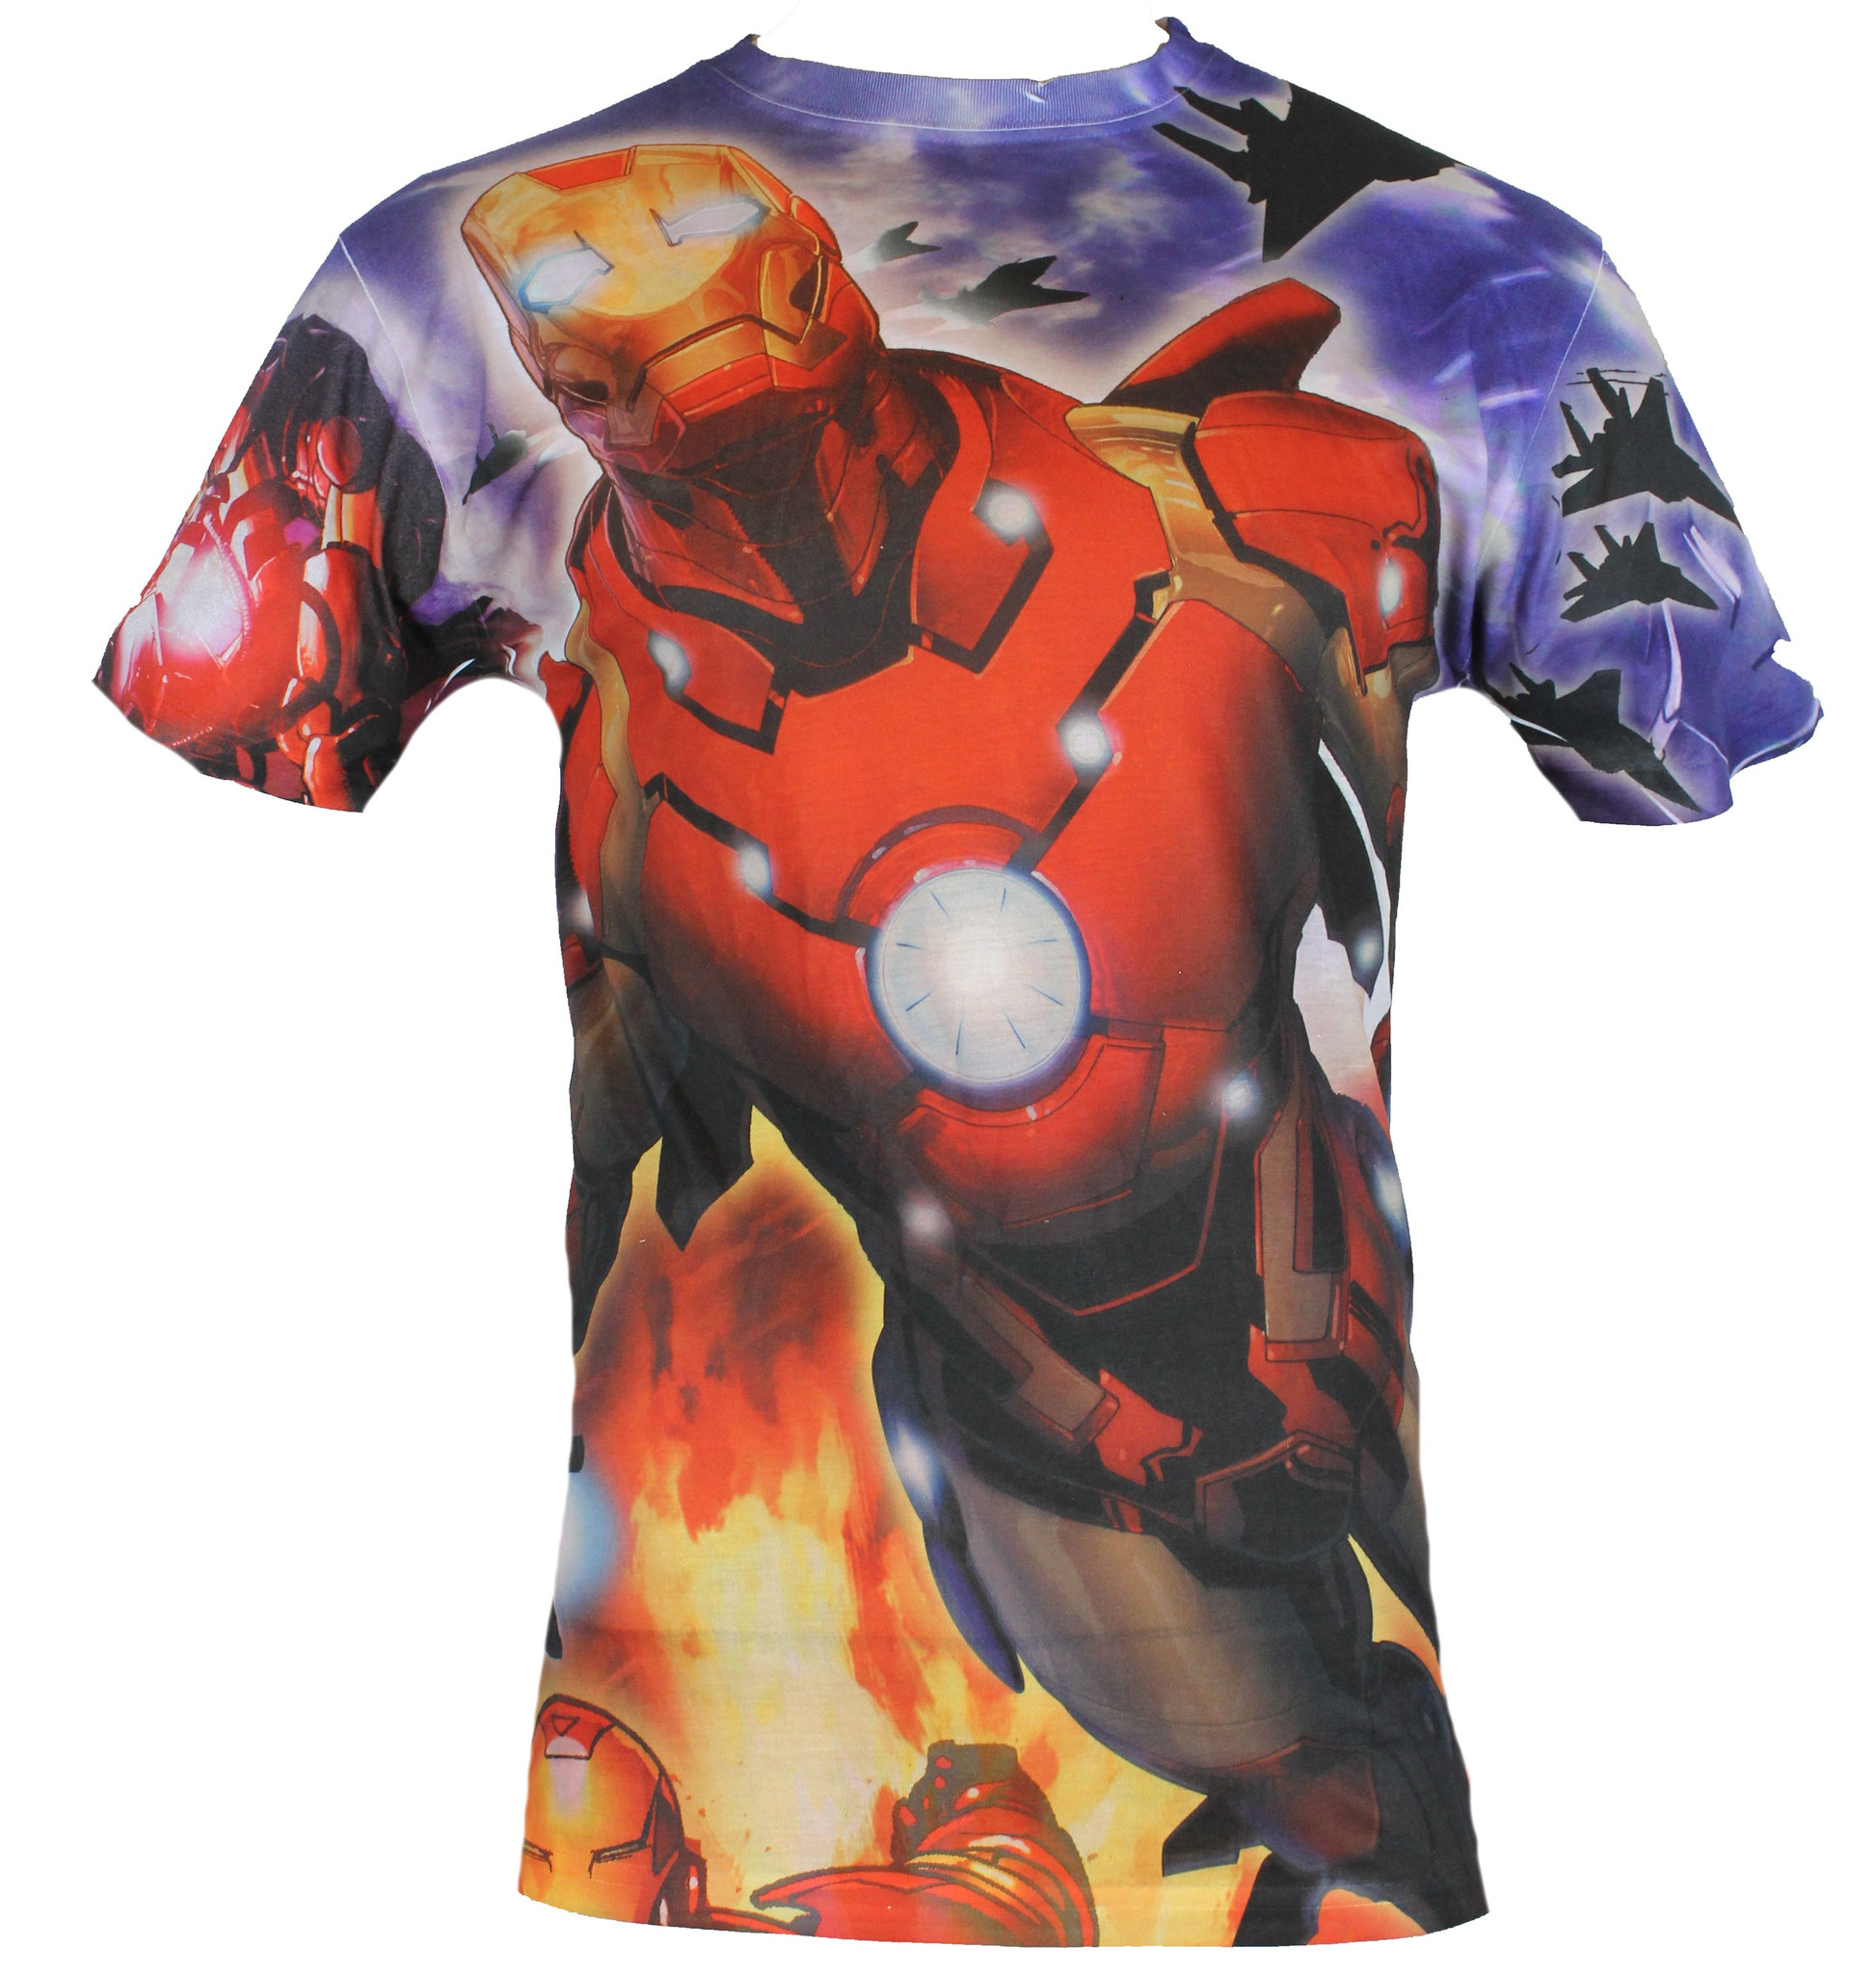 Iron Man (Marvel Comics)  Mens T-Shirt - Giant Allover Launching Attack Image